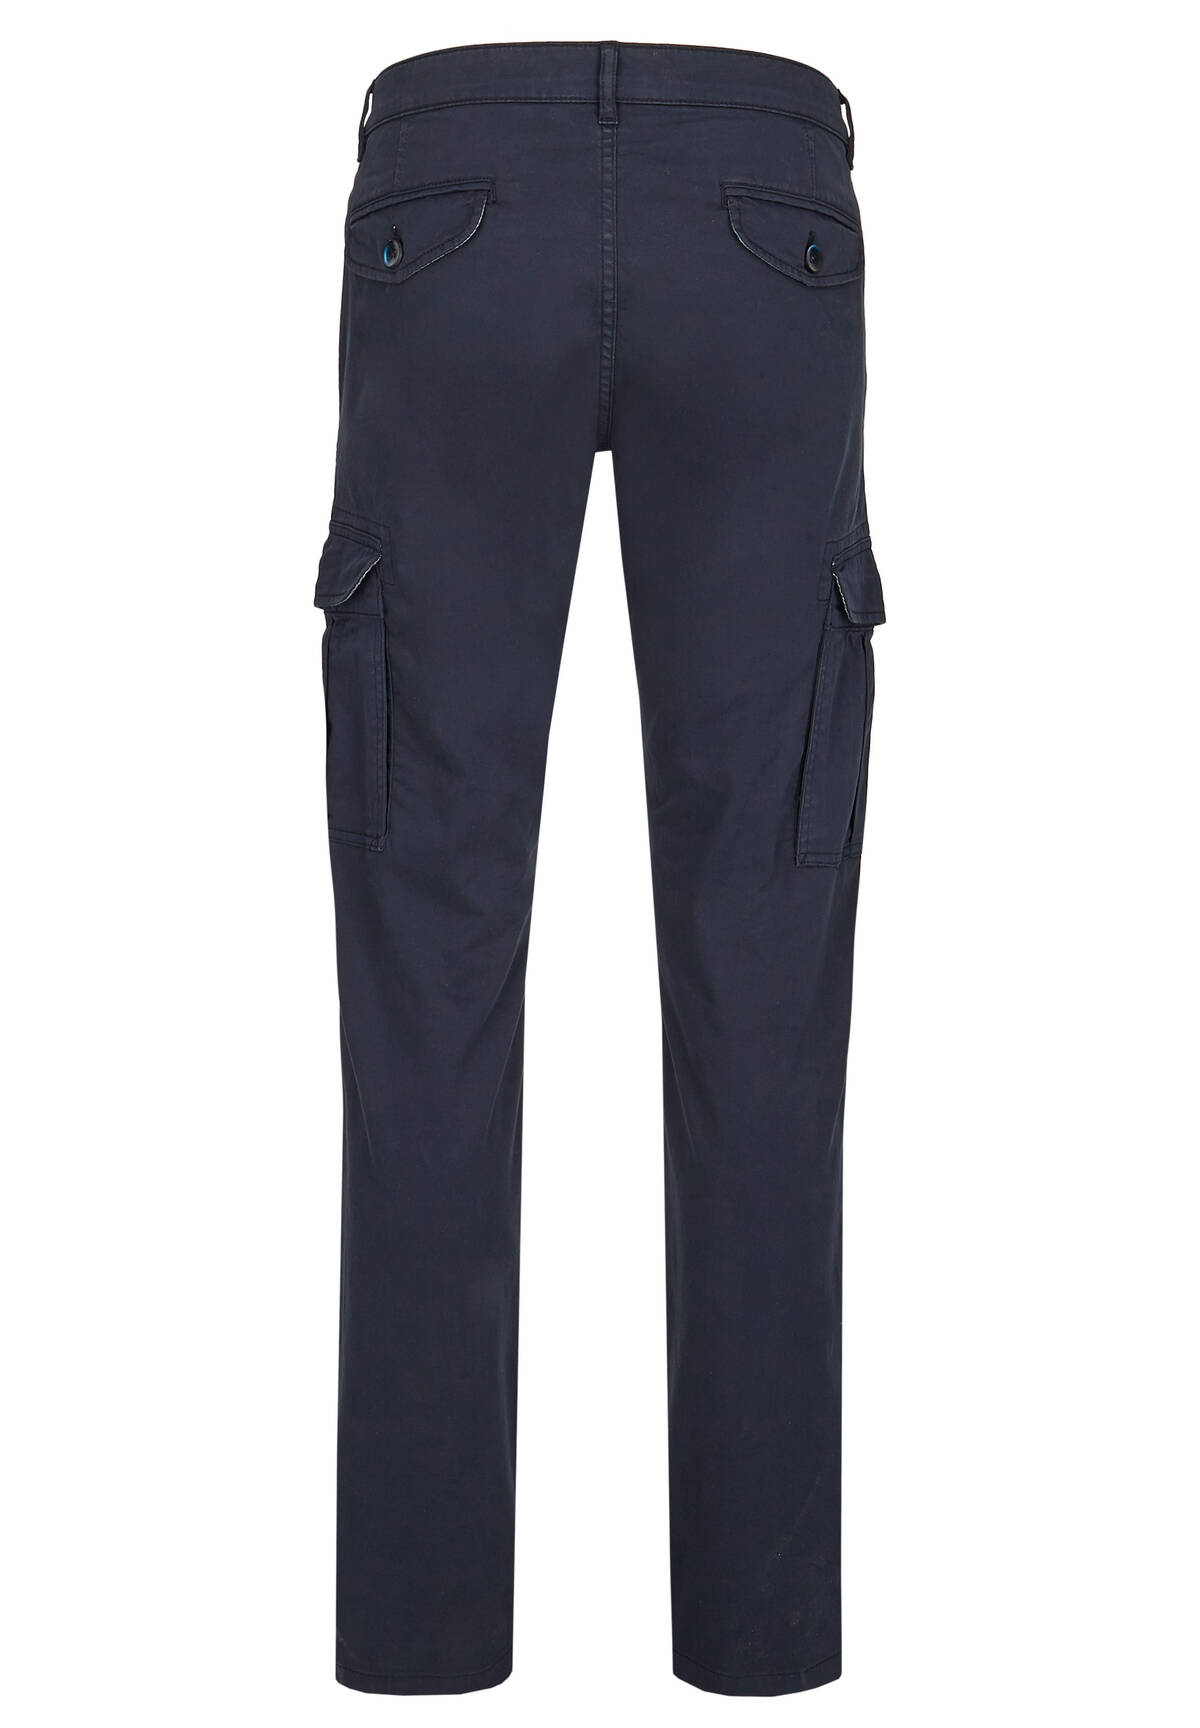 Shape-Fit Cargo / TROUSERS CHINO